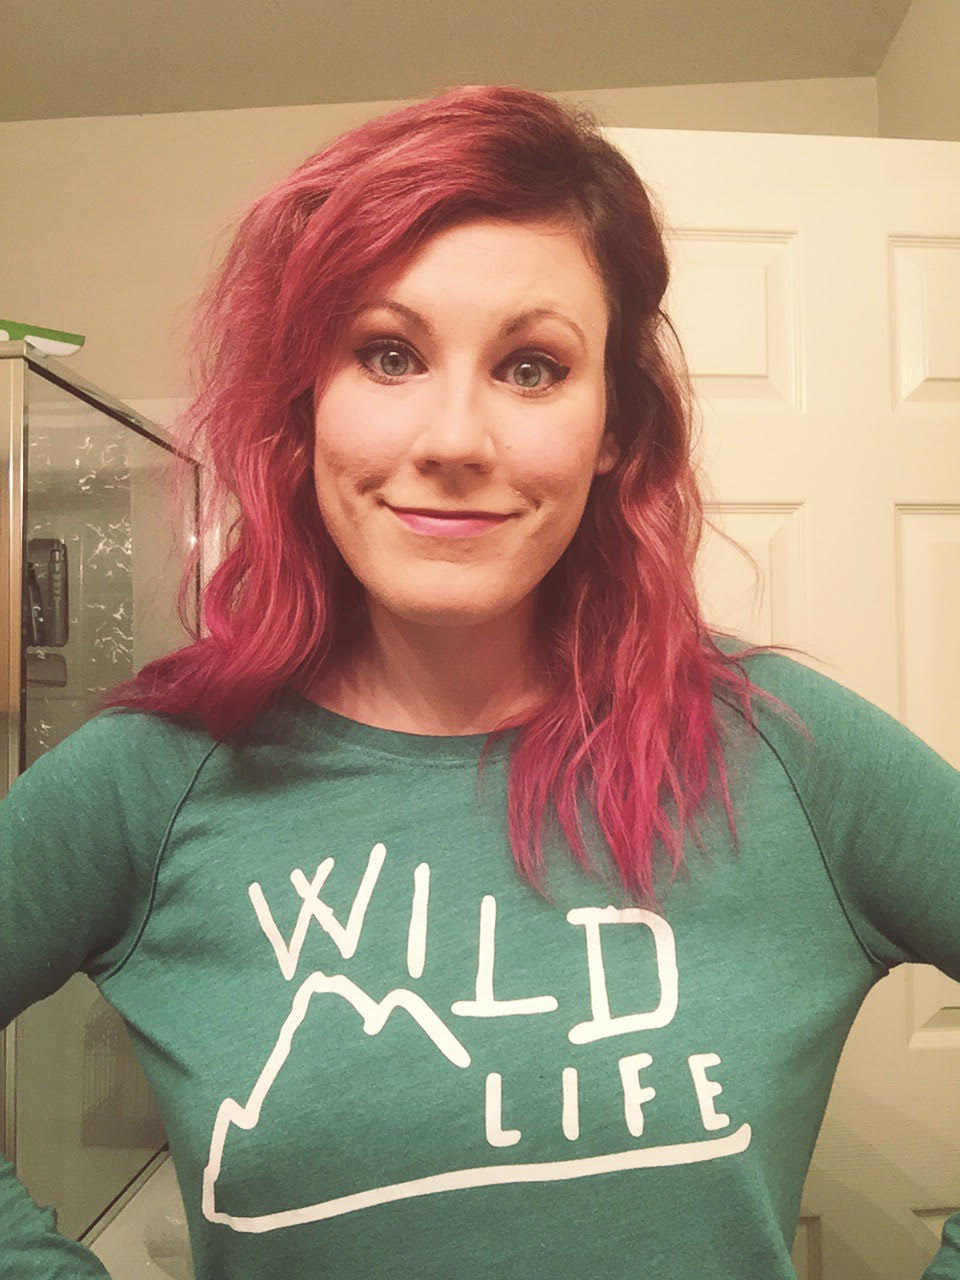 Wild Life by Indy Brand Clothing